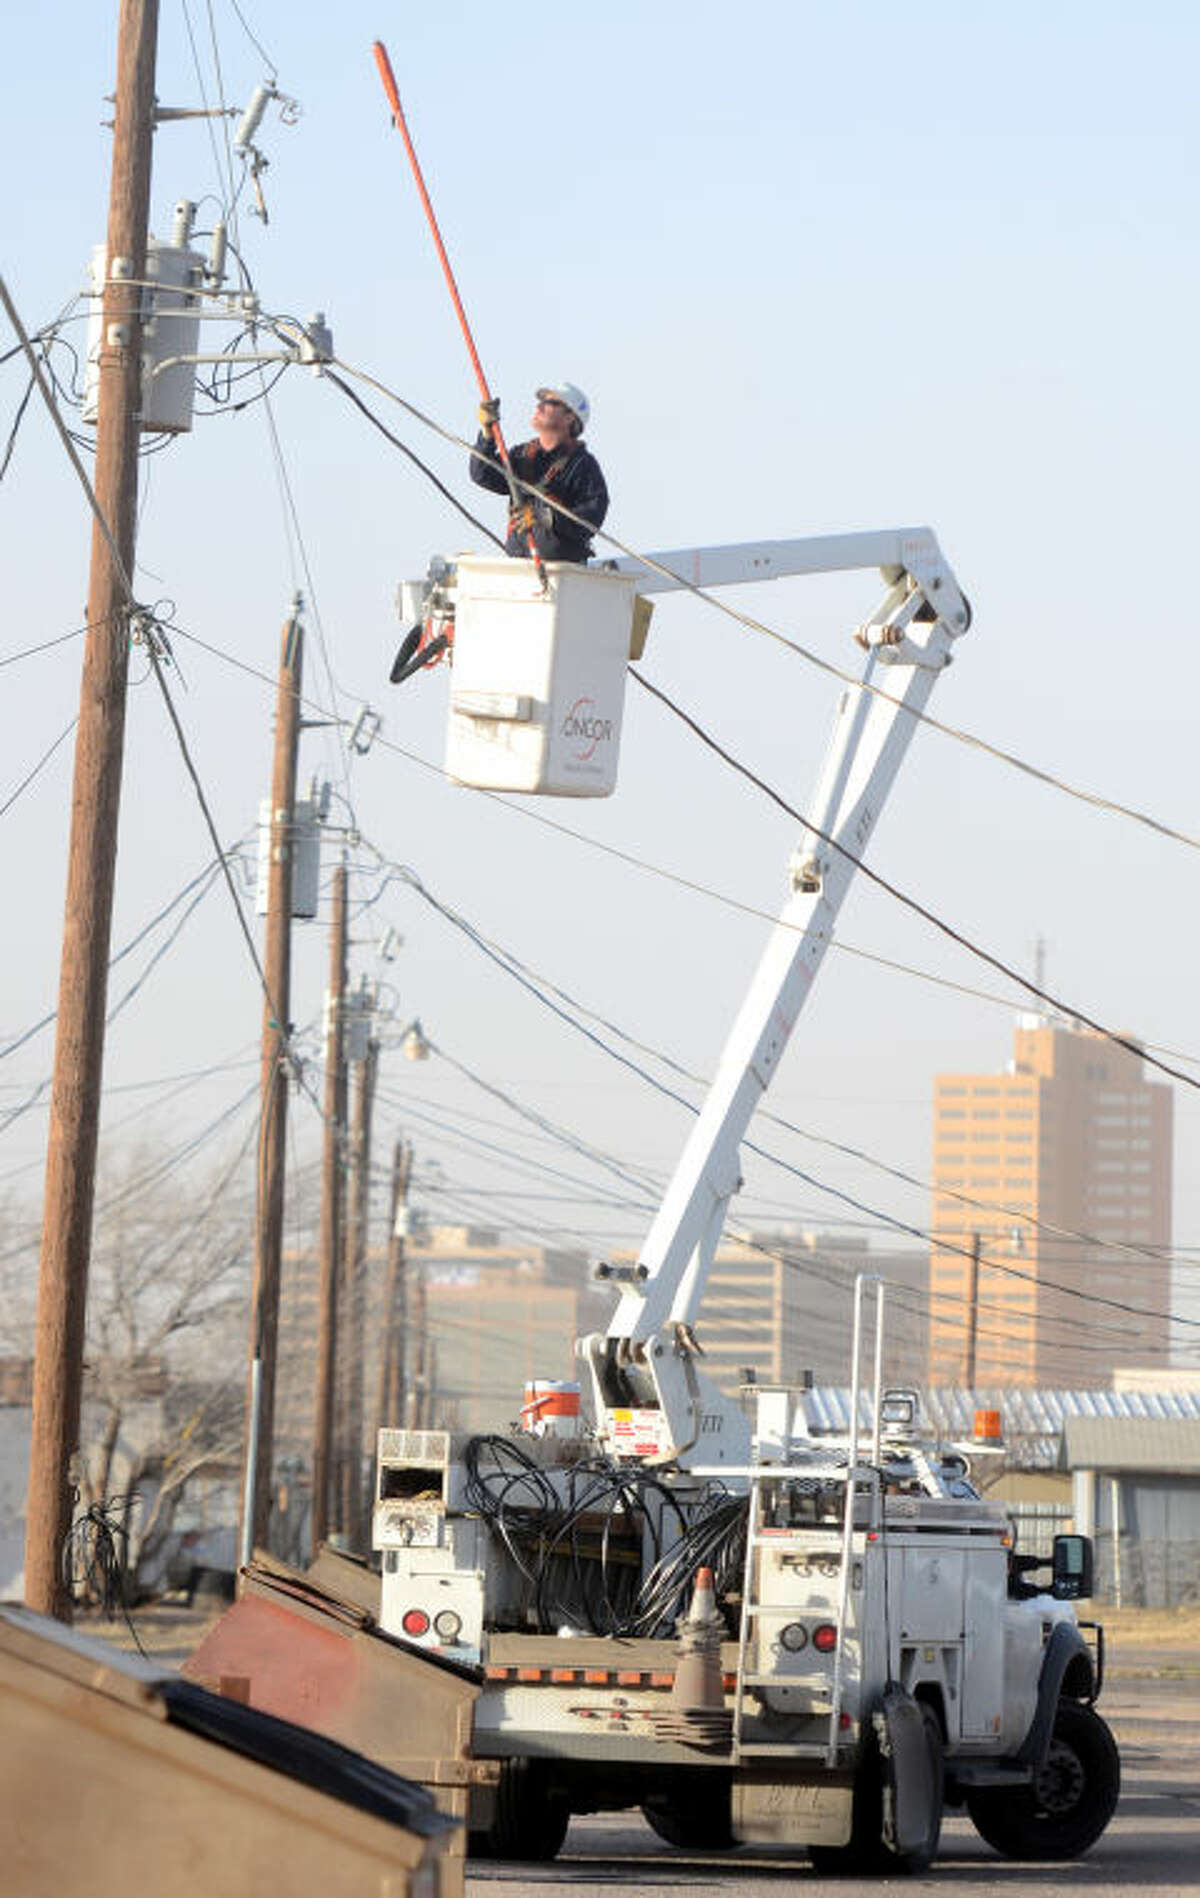 An Oncor Energy worker makes repairs to a power line in an alley near the intersection of Hicks Ave. and Belmont St. during a windstorm Tuesday. James Durbin/Reporter-Telegram